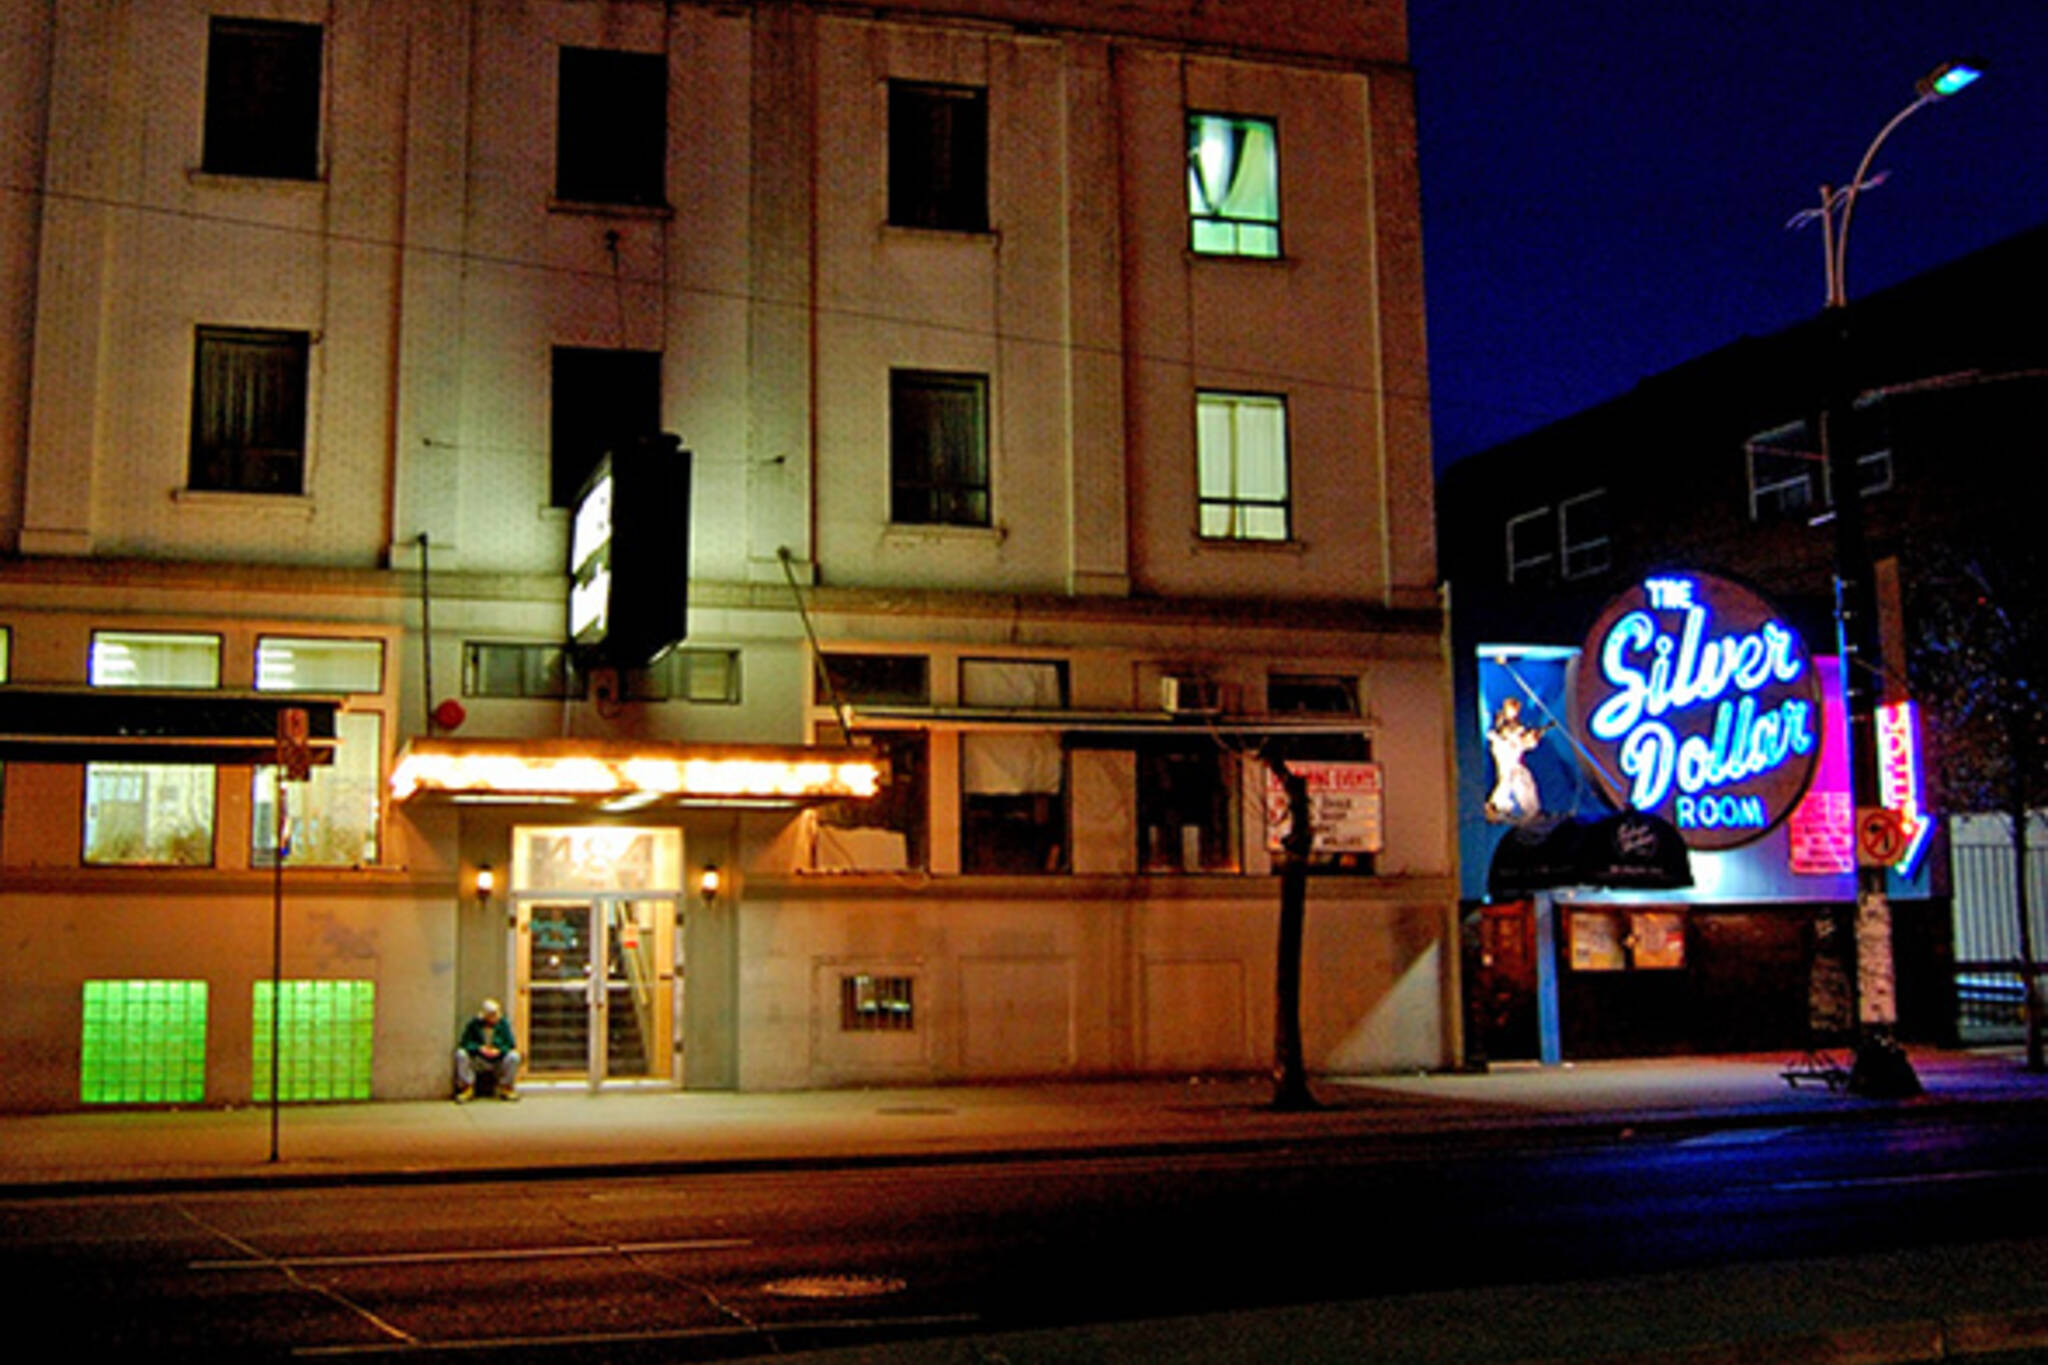 Silver Dollar Hotel Waverly